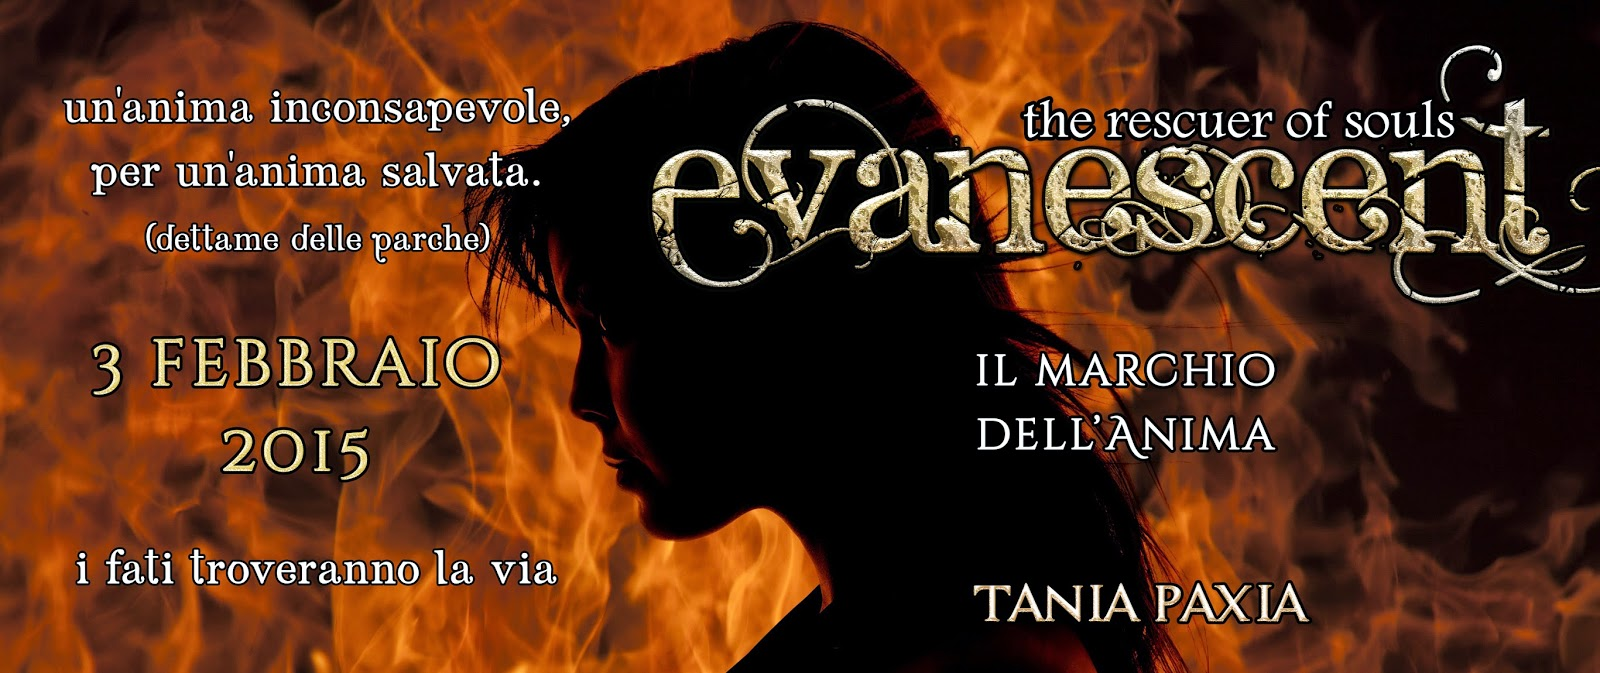 http://www.amazon.it/Il-Marchio-dellAnima-Evanescent-Rescuer-ebook/dp/B00S17VEXG/ref=sr_1_2?ie=UTF8&qid=1421145521&sr=8-2&keywords=tania+paxia